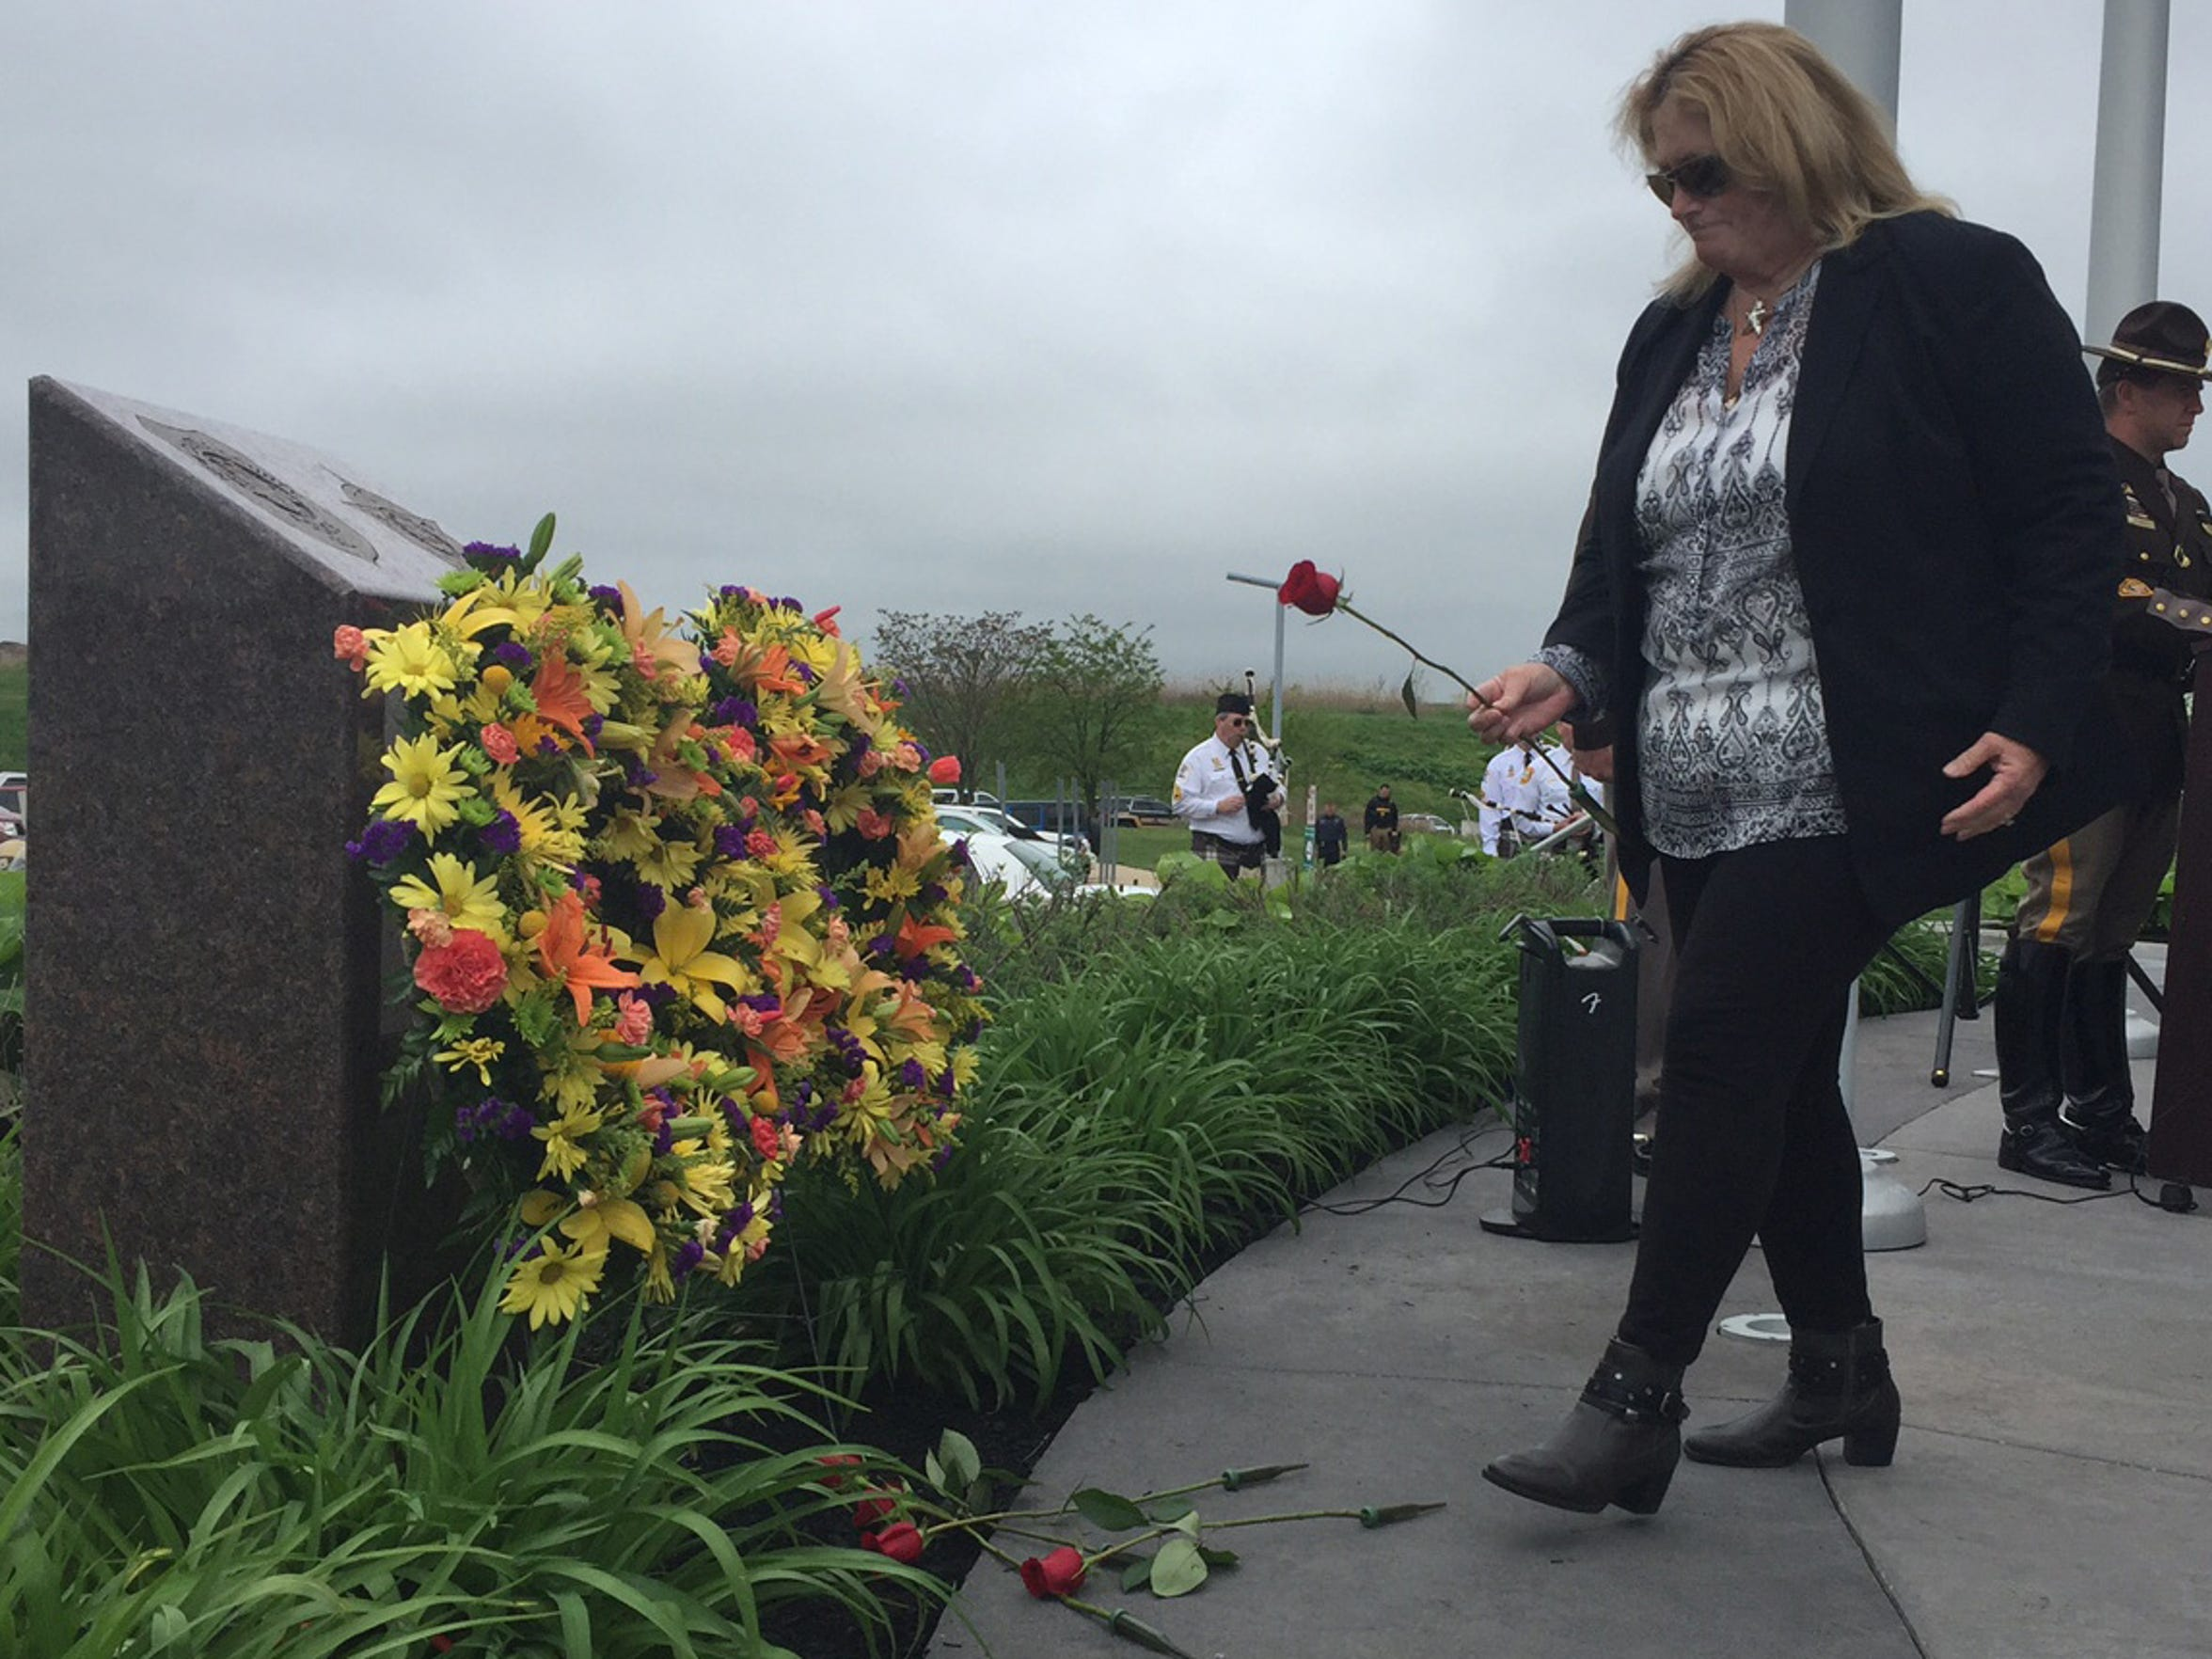 Sheila Sullivan carries a rose to present at a memorial in front of the Paul J. Sweeney Public Safety Building in Minquadale.  The rose is in honor of her father, Cpl. Ralph Dorris.  Eight other roses were laid at the memorial during the remembrance ceremony.